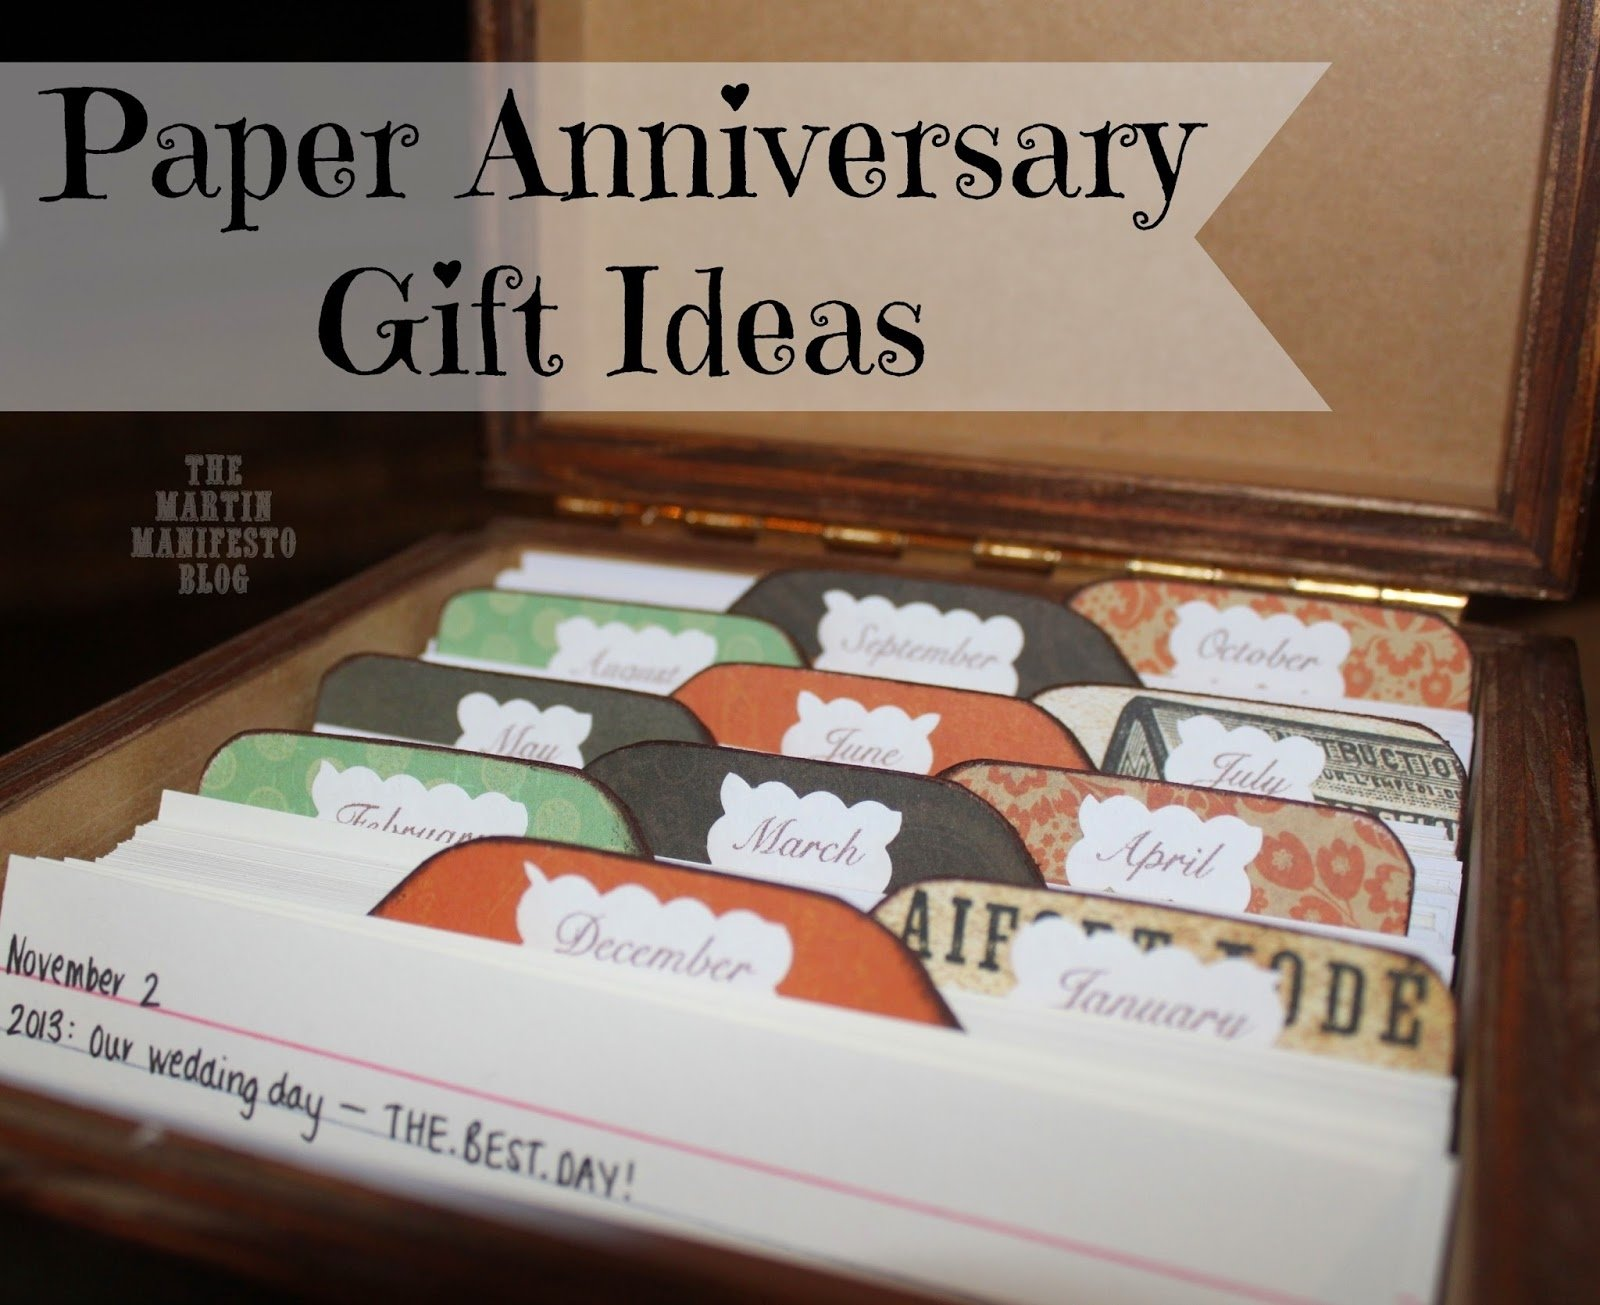 10 Stylish Ideas For First Anniversary Gift paper anniversary gifts for her college paper academic writing 3 2020